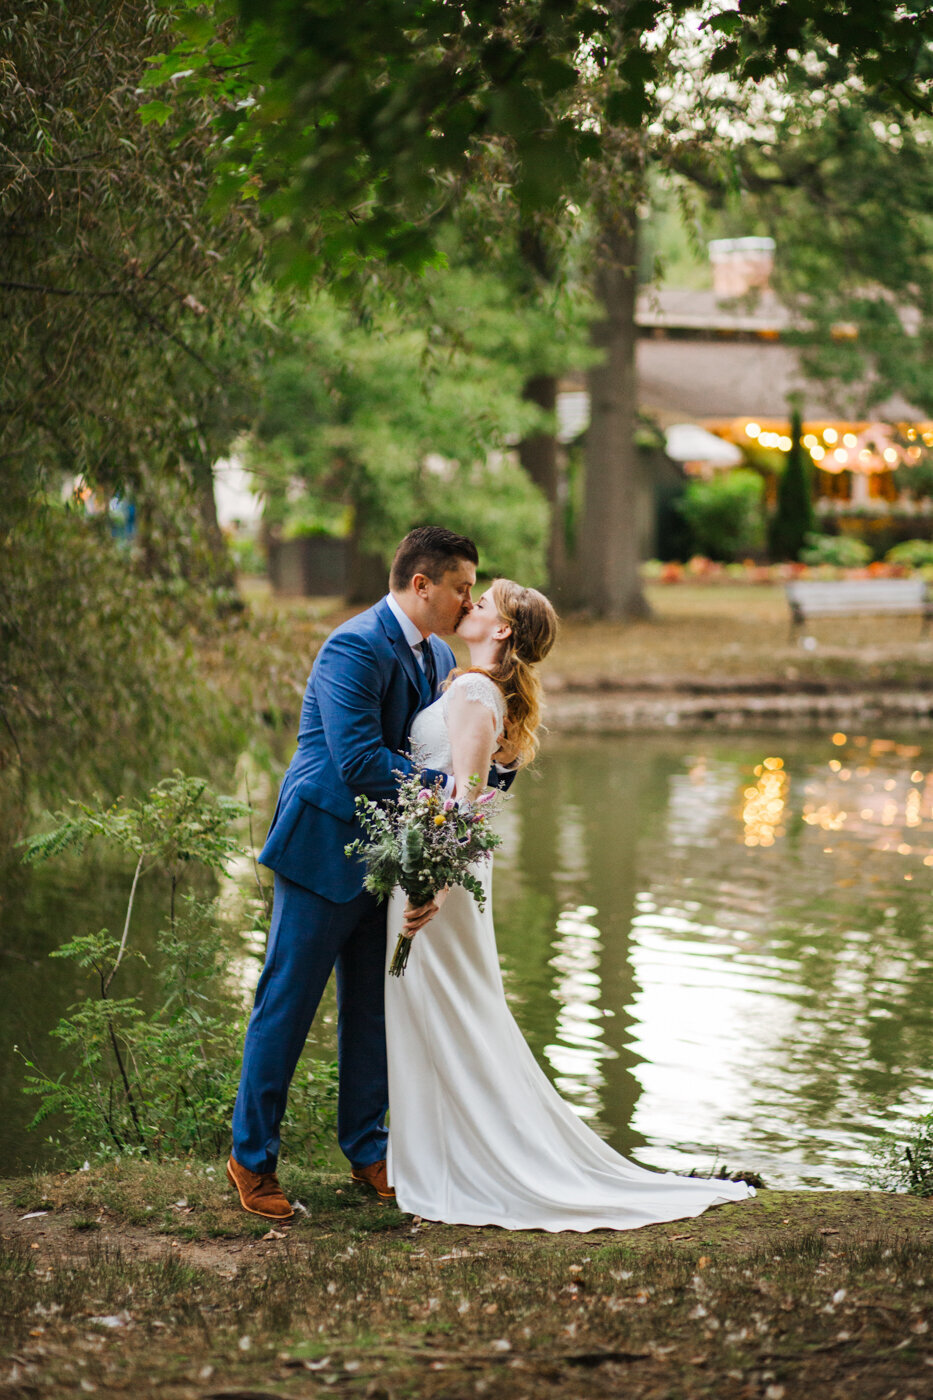 Elizabeth Park Weddings